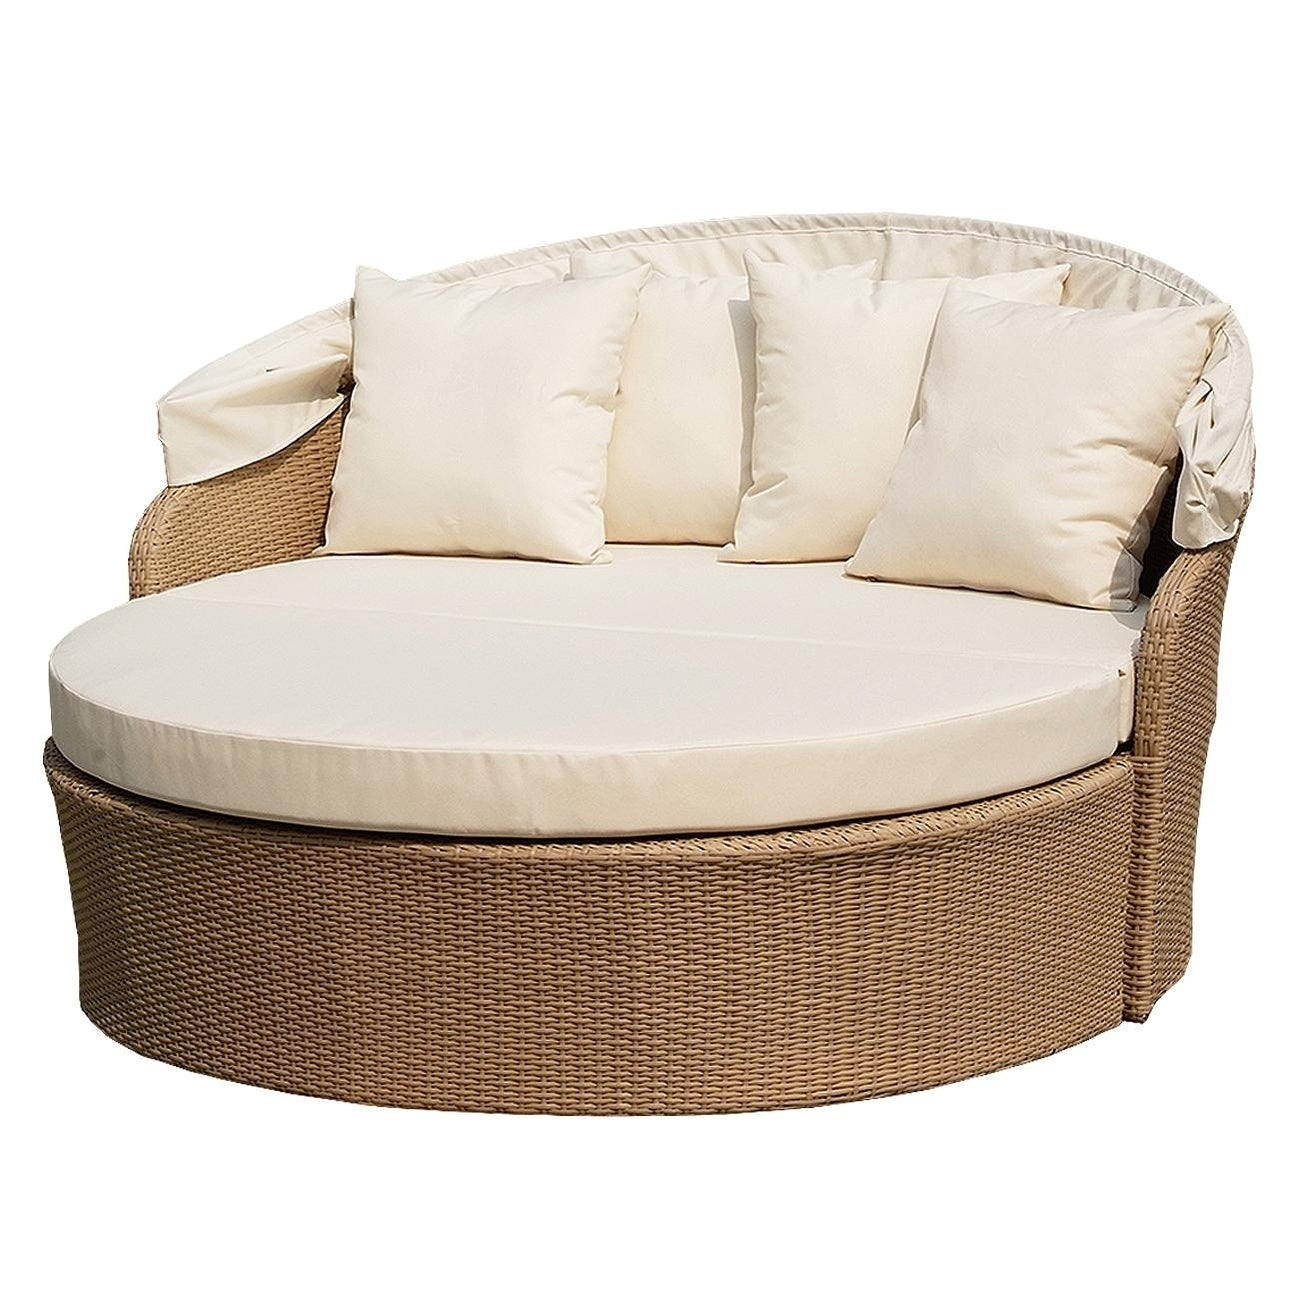 Canopy Daybed Outdoor Backyard Patio Furniture Light Brown Wicker